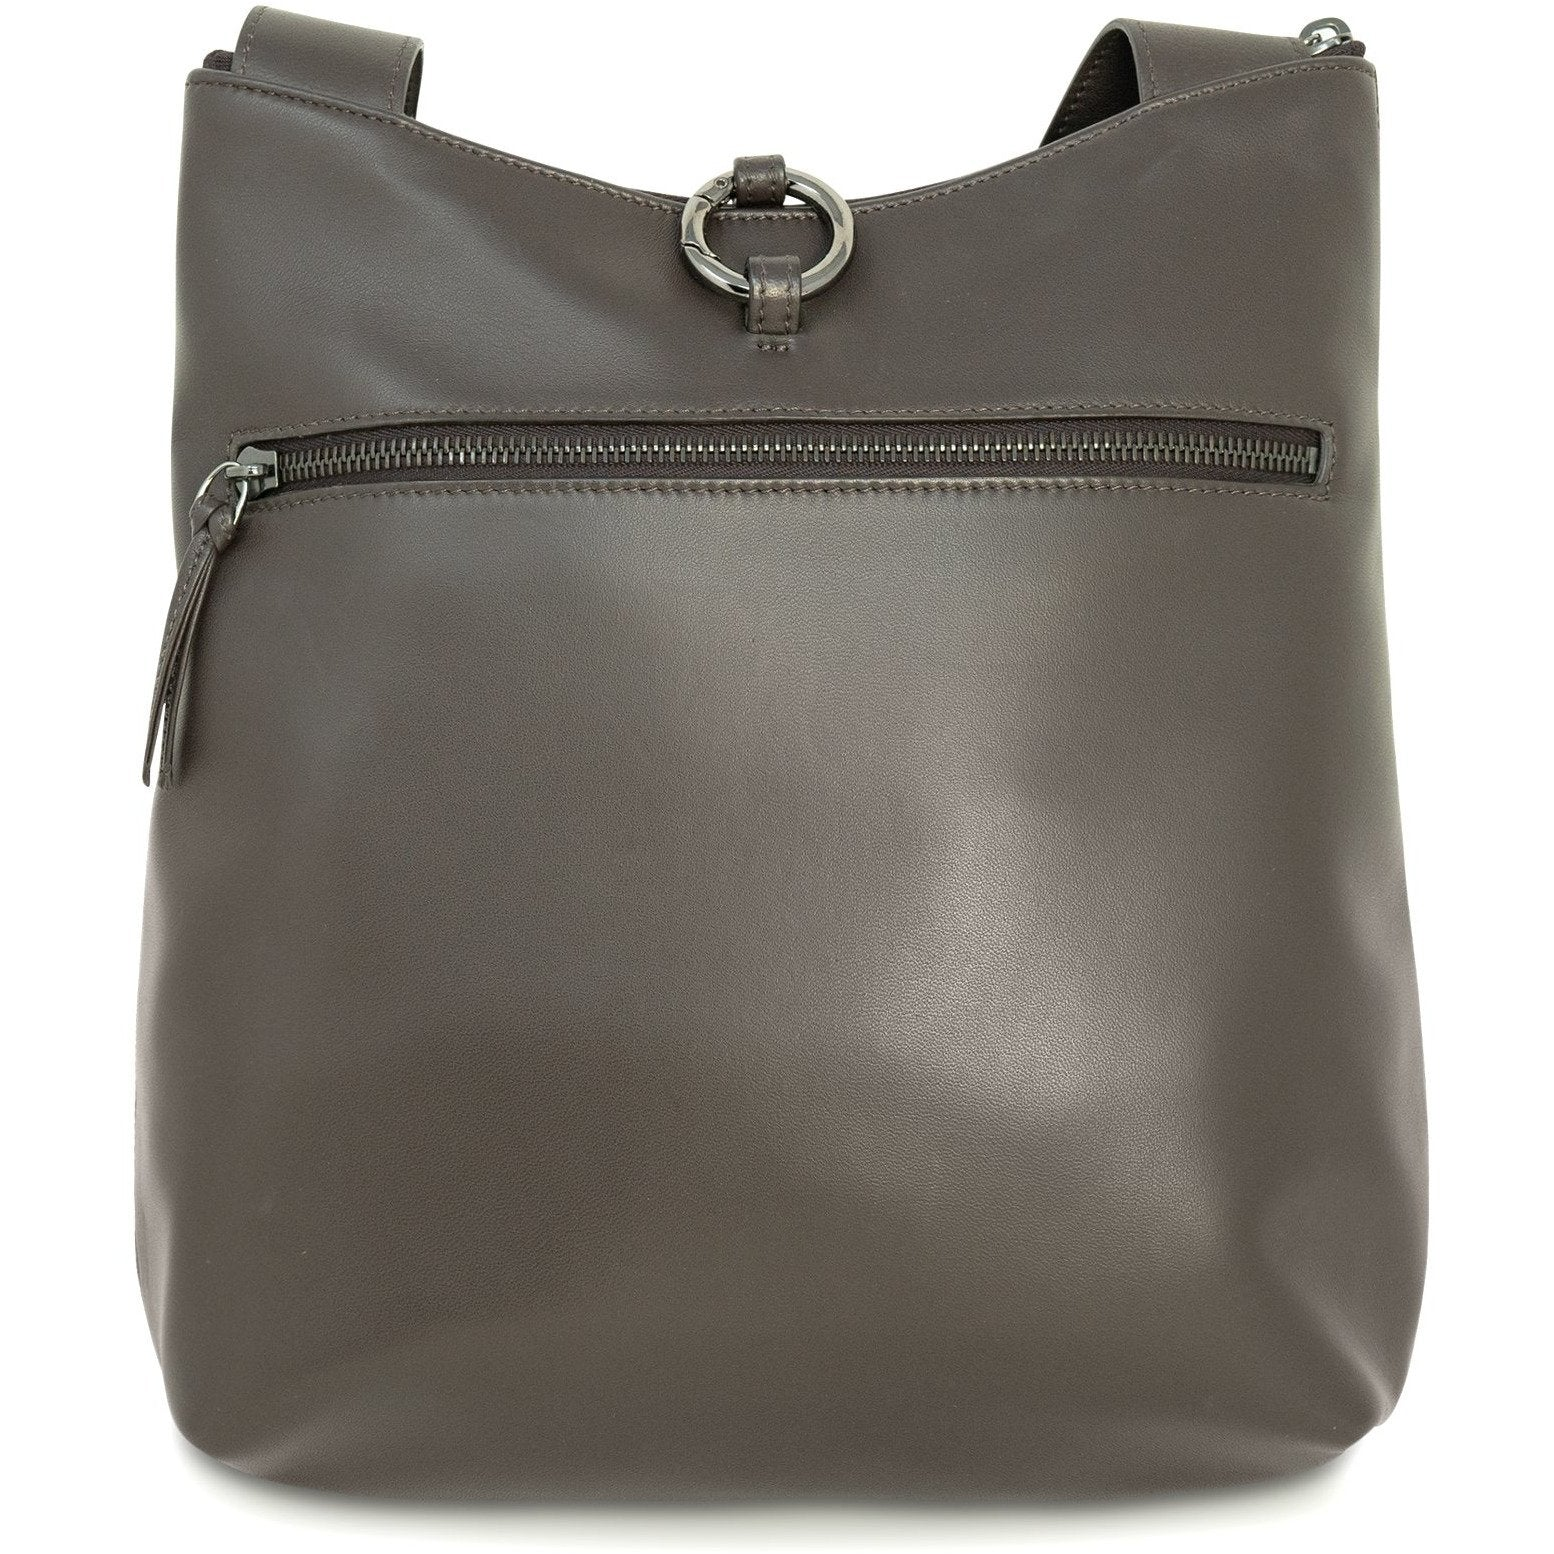 GINGER Women Intrecciato Leather Crossbody Bag - Jennifer Tattanelli